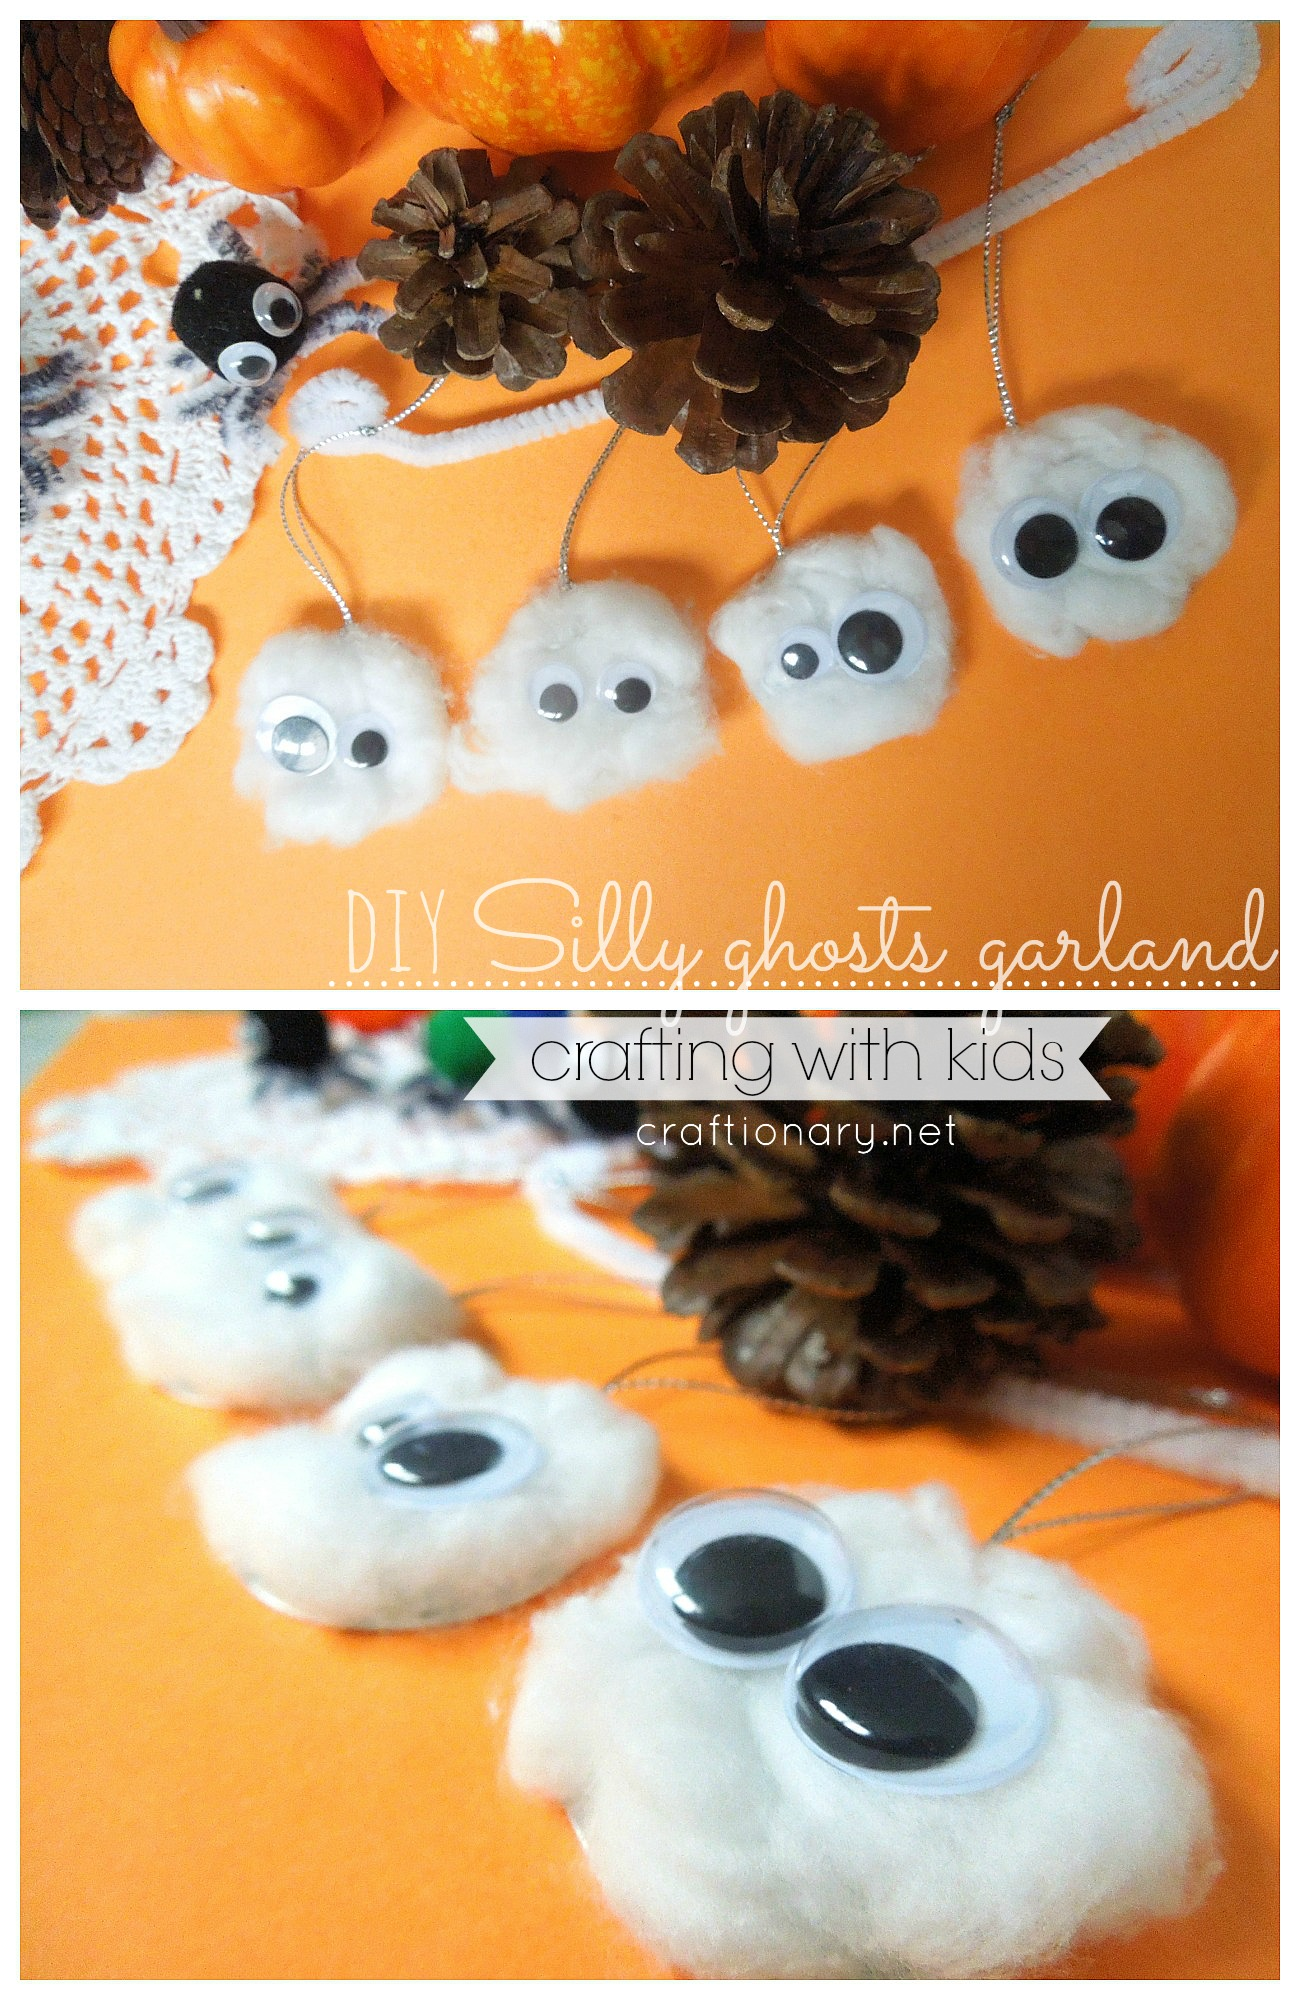 crafting silly ghosts garland